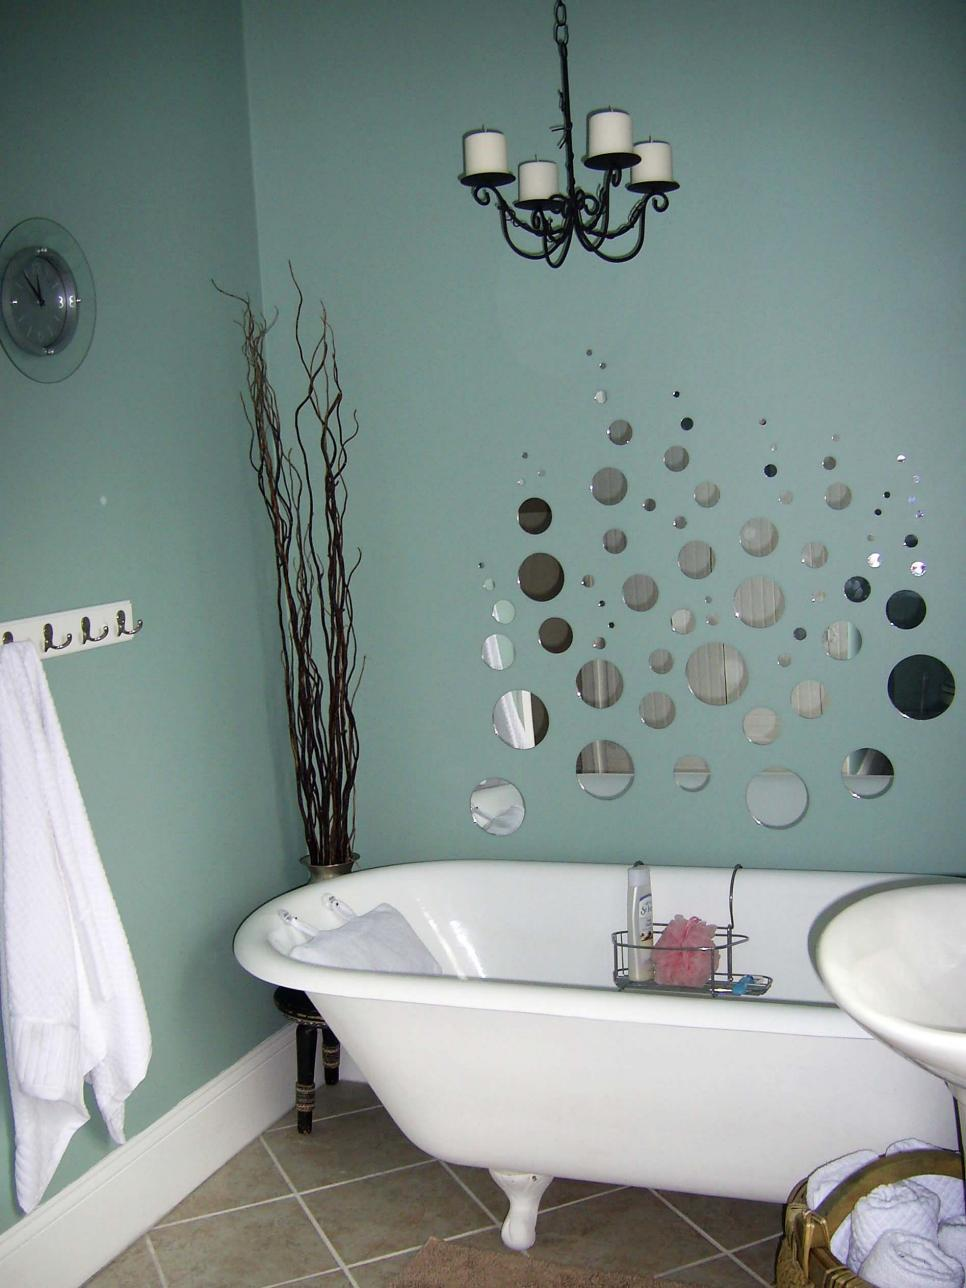 Diy Bathroom Decor Bathrooms On A Budget Our 10 Favorites From Rate My Space Diy